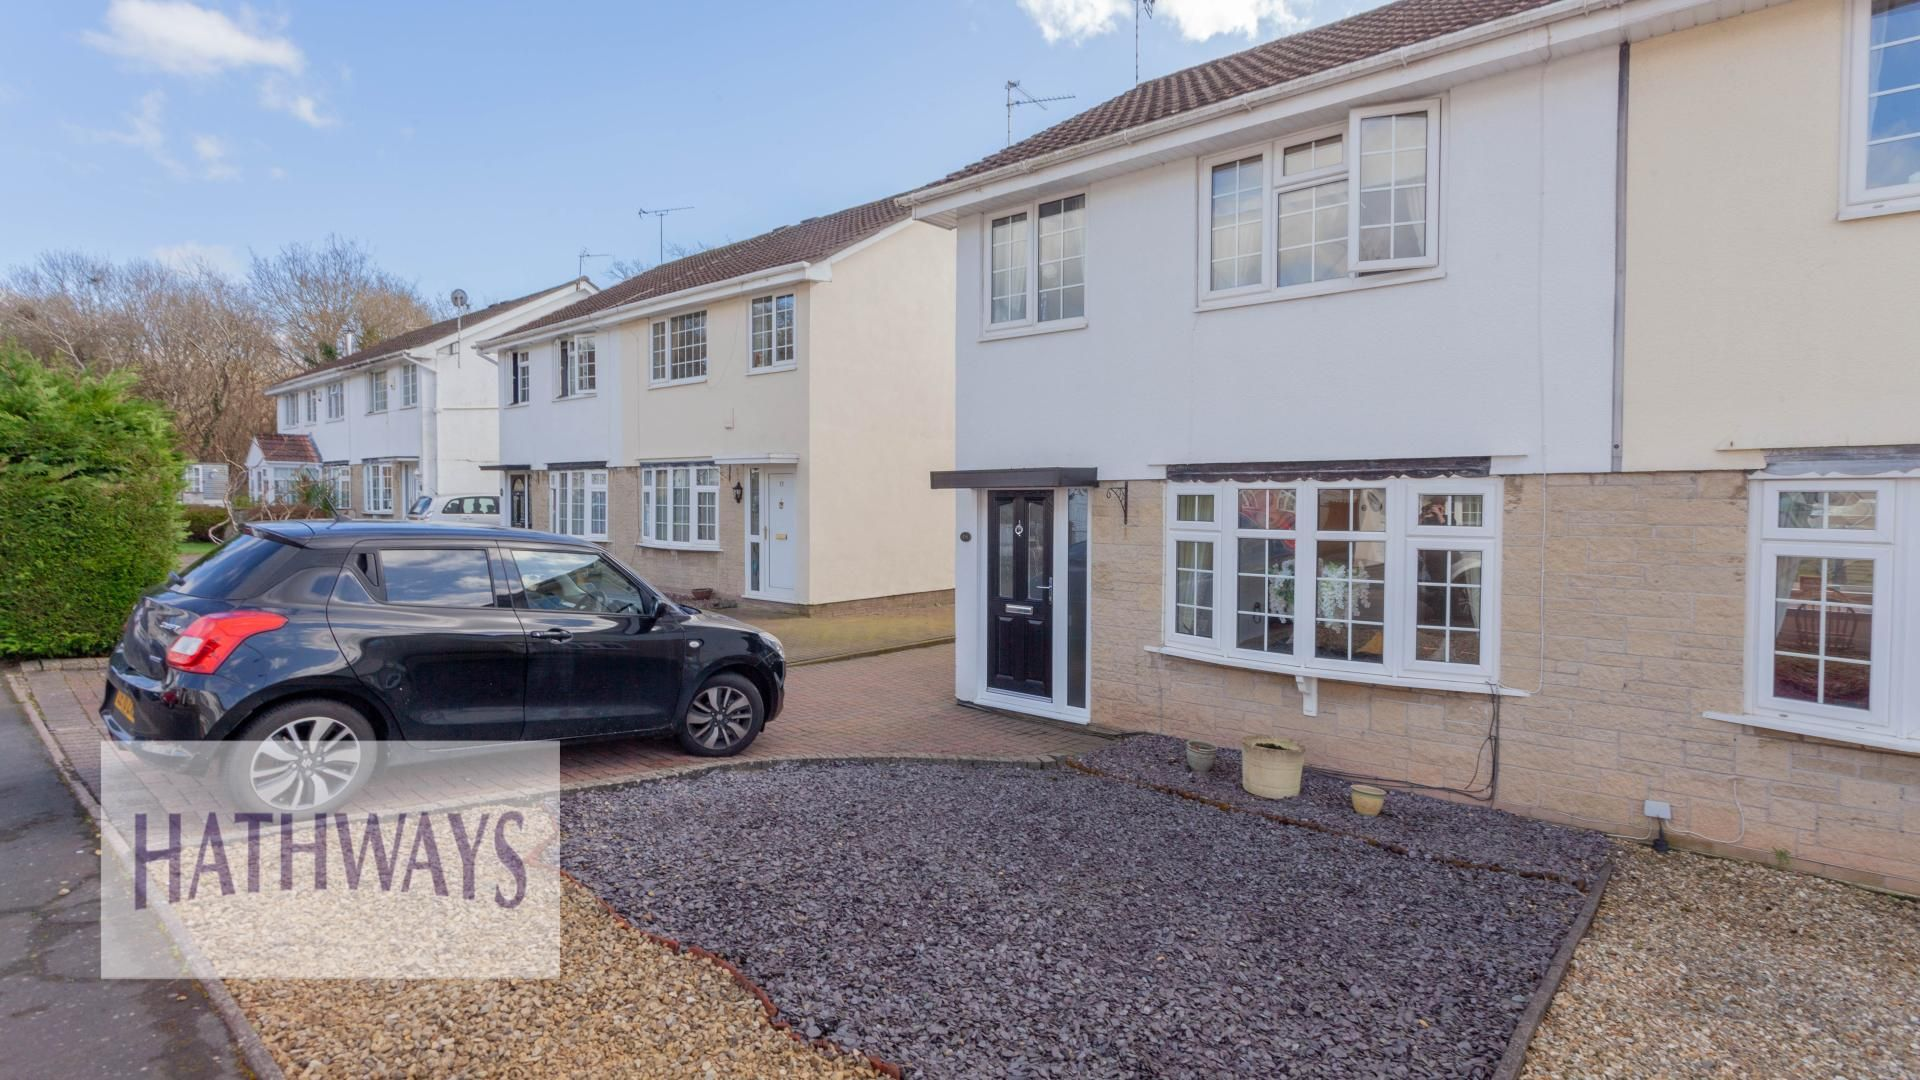 3 bed house for sale in Home Farm Crescent, NP18